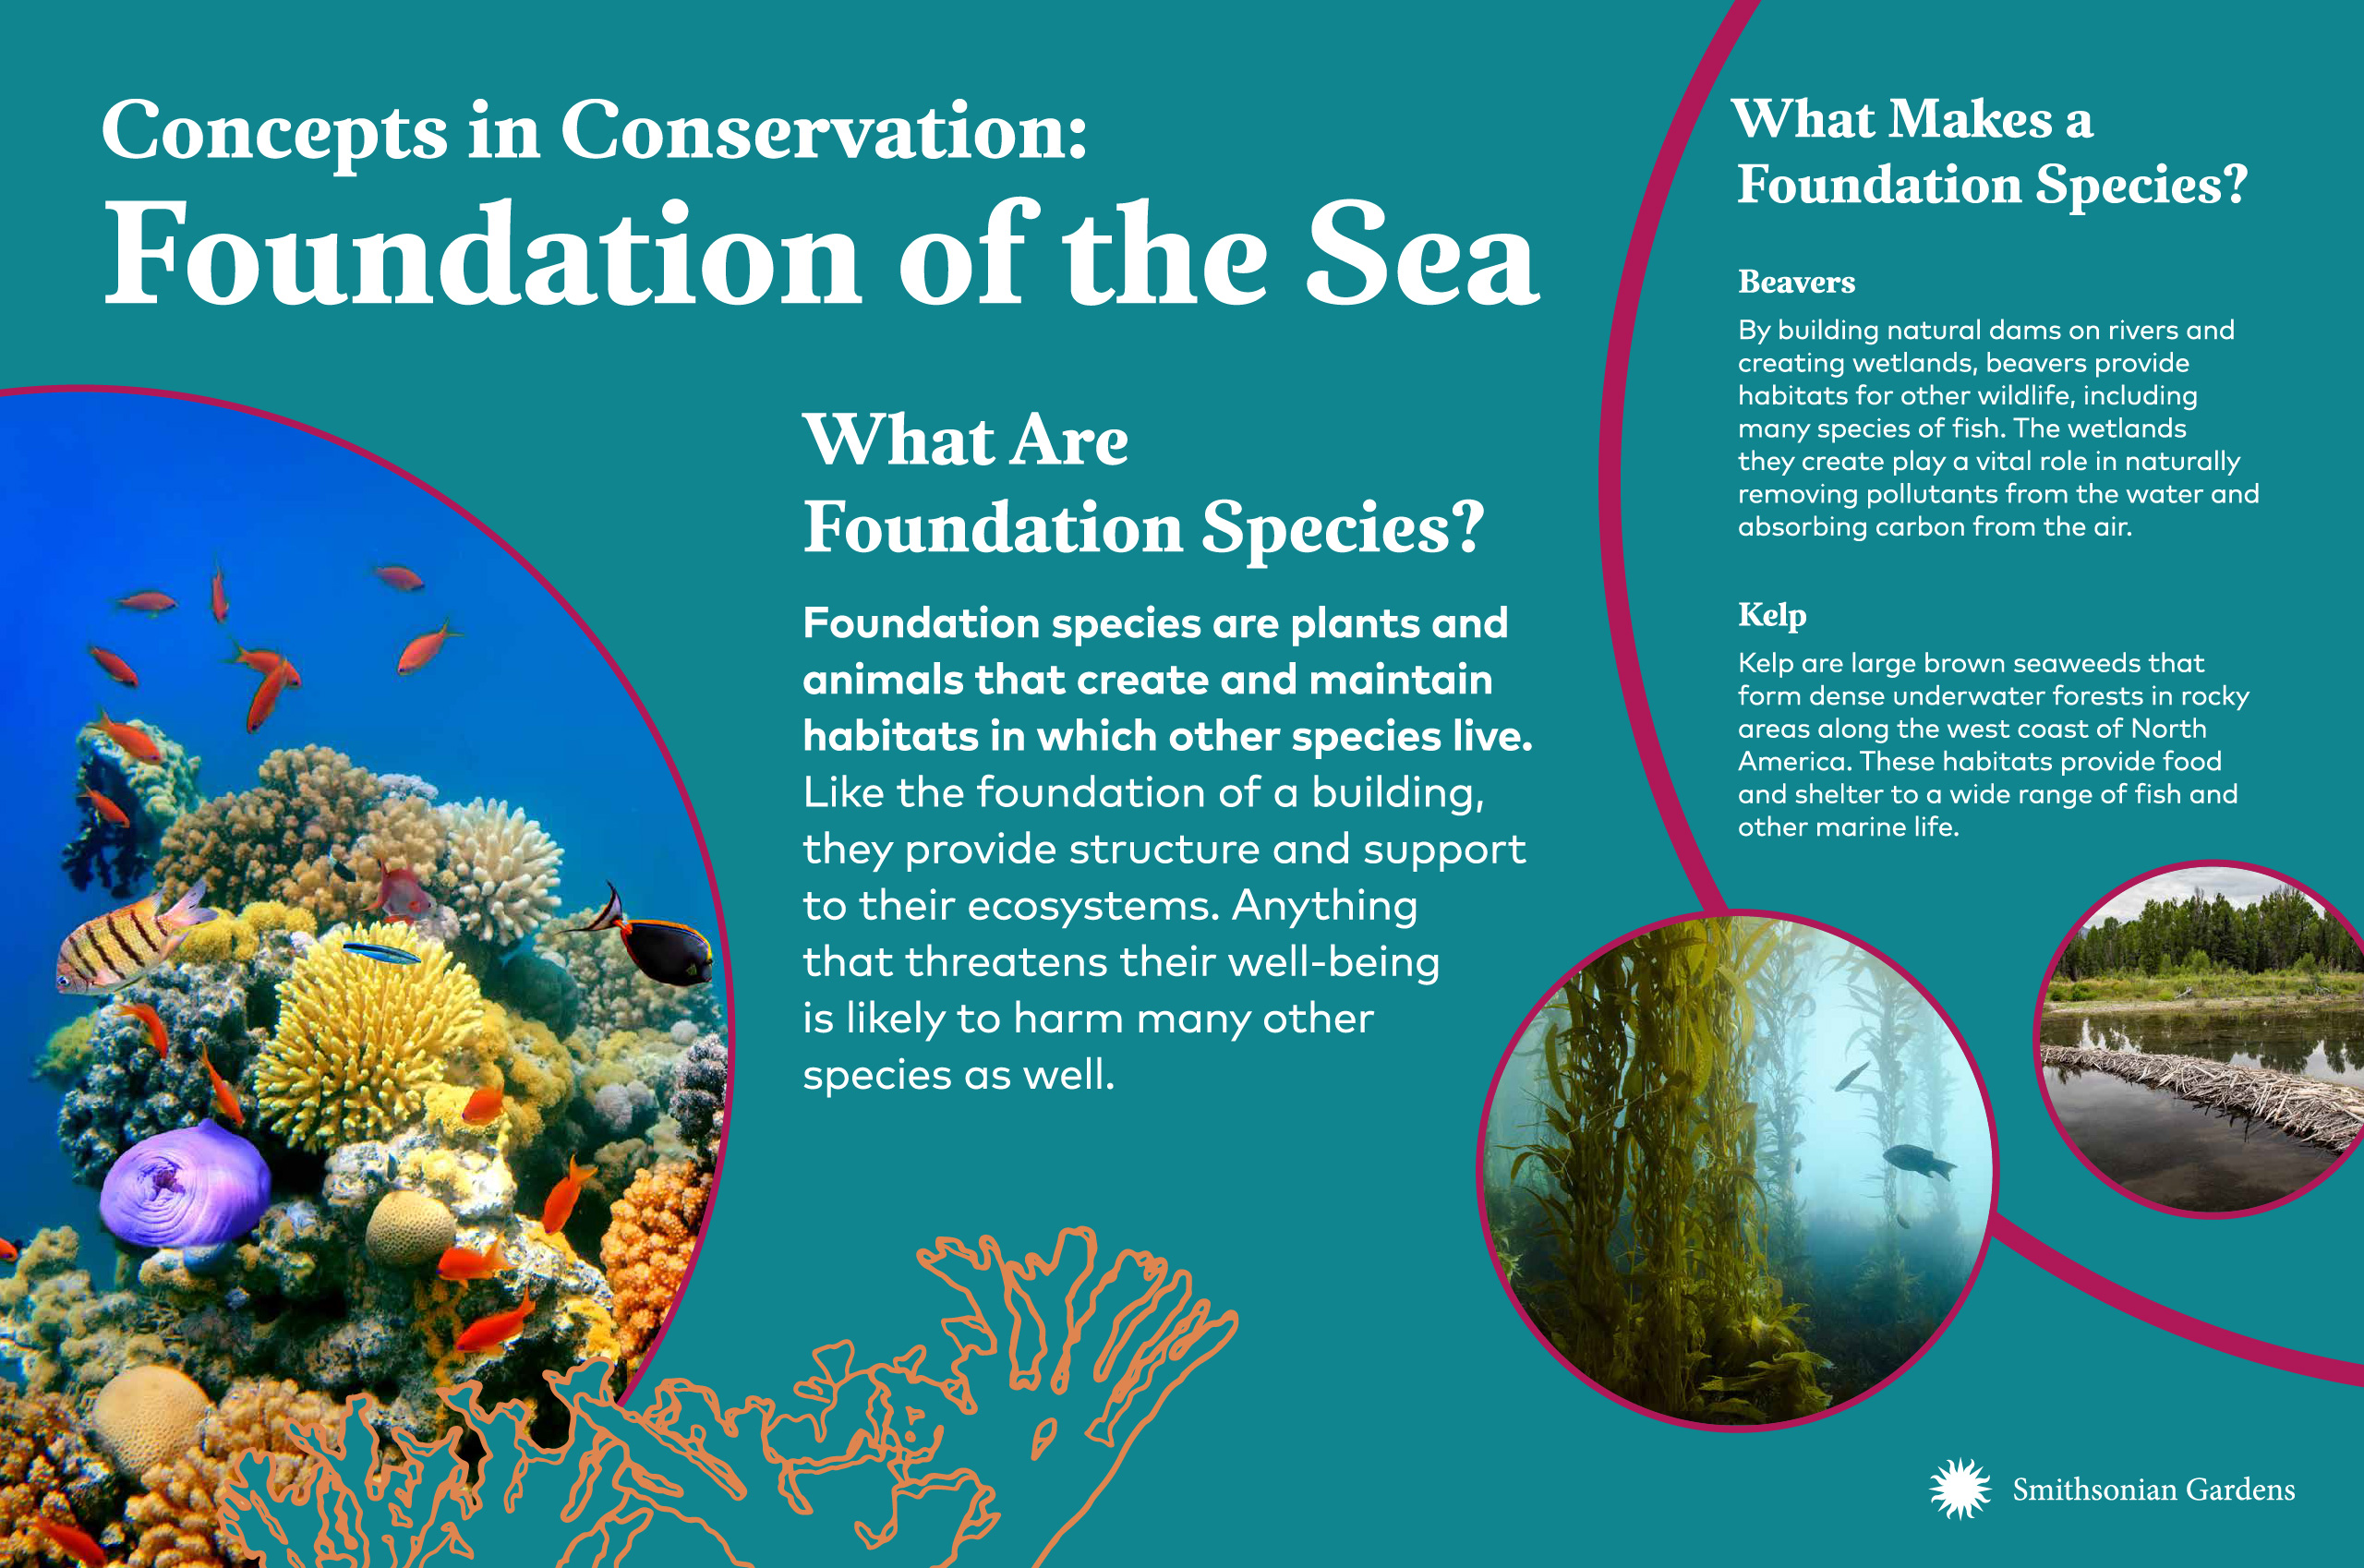 Concepts in Conservation: Foundation of the Sea exhibit panel